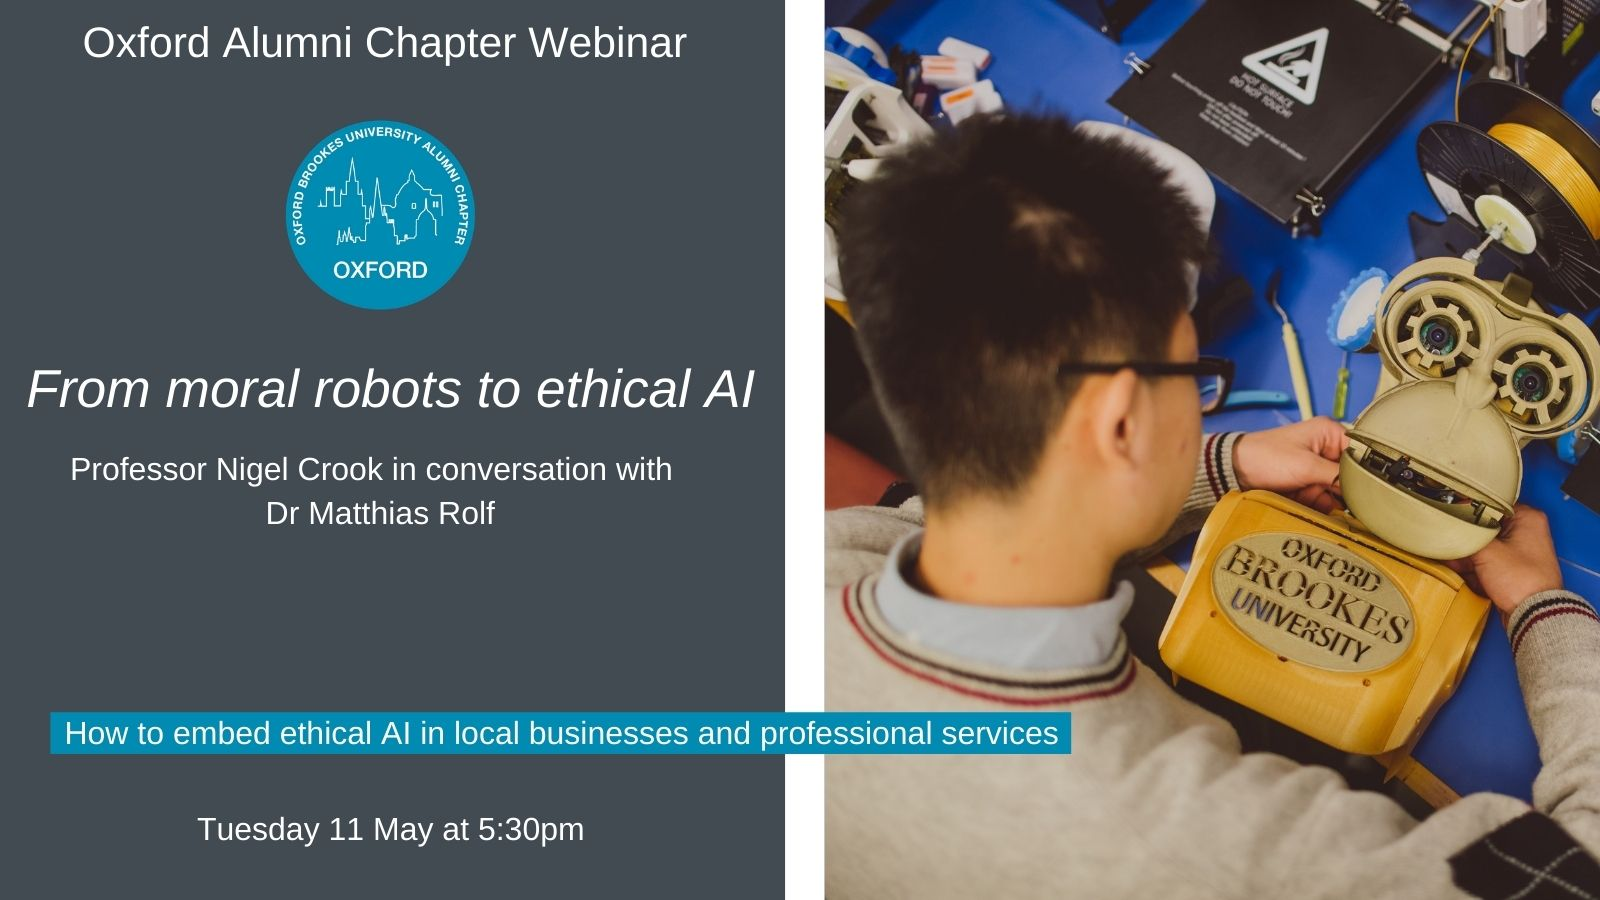 From moral robots to ethical AI